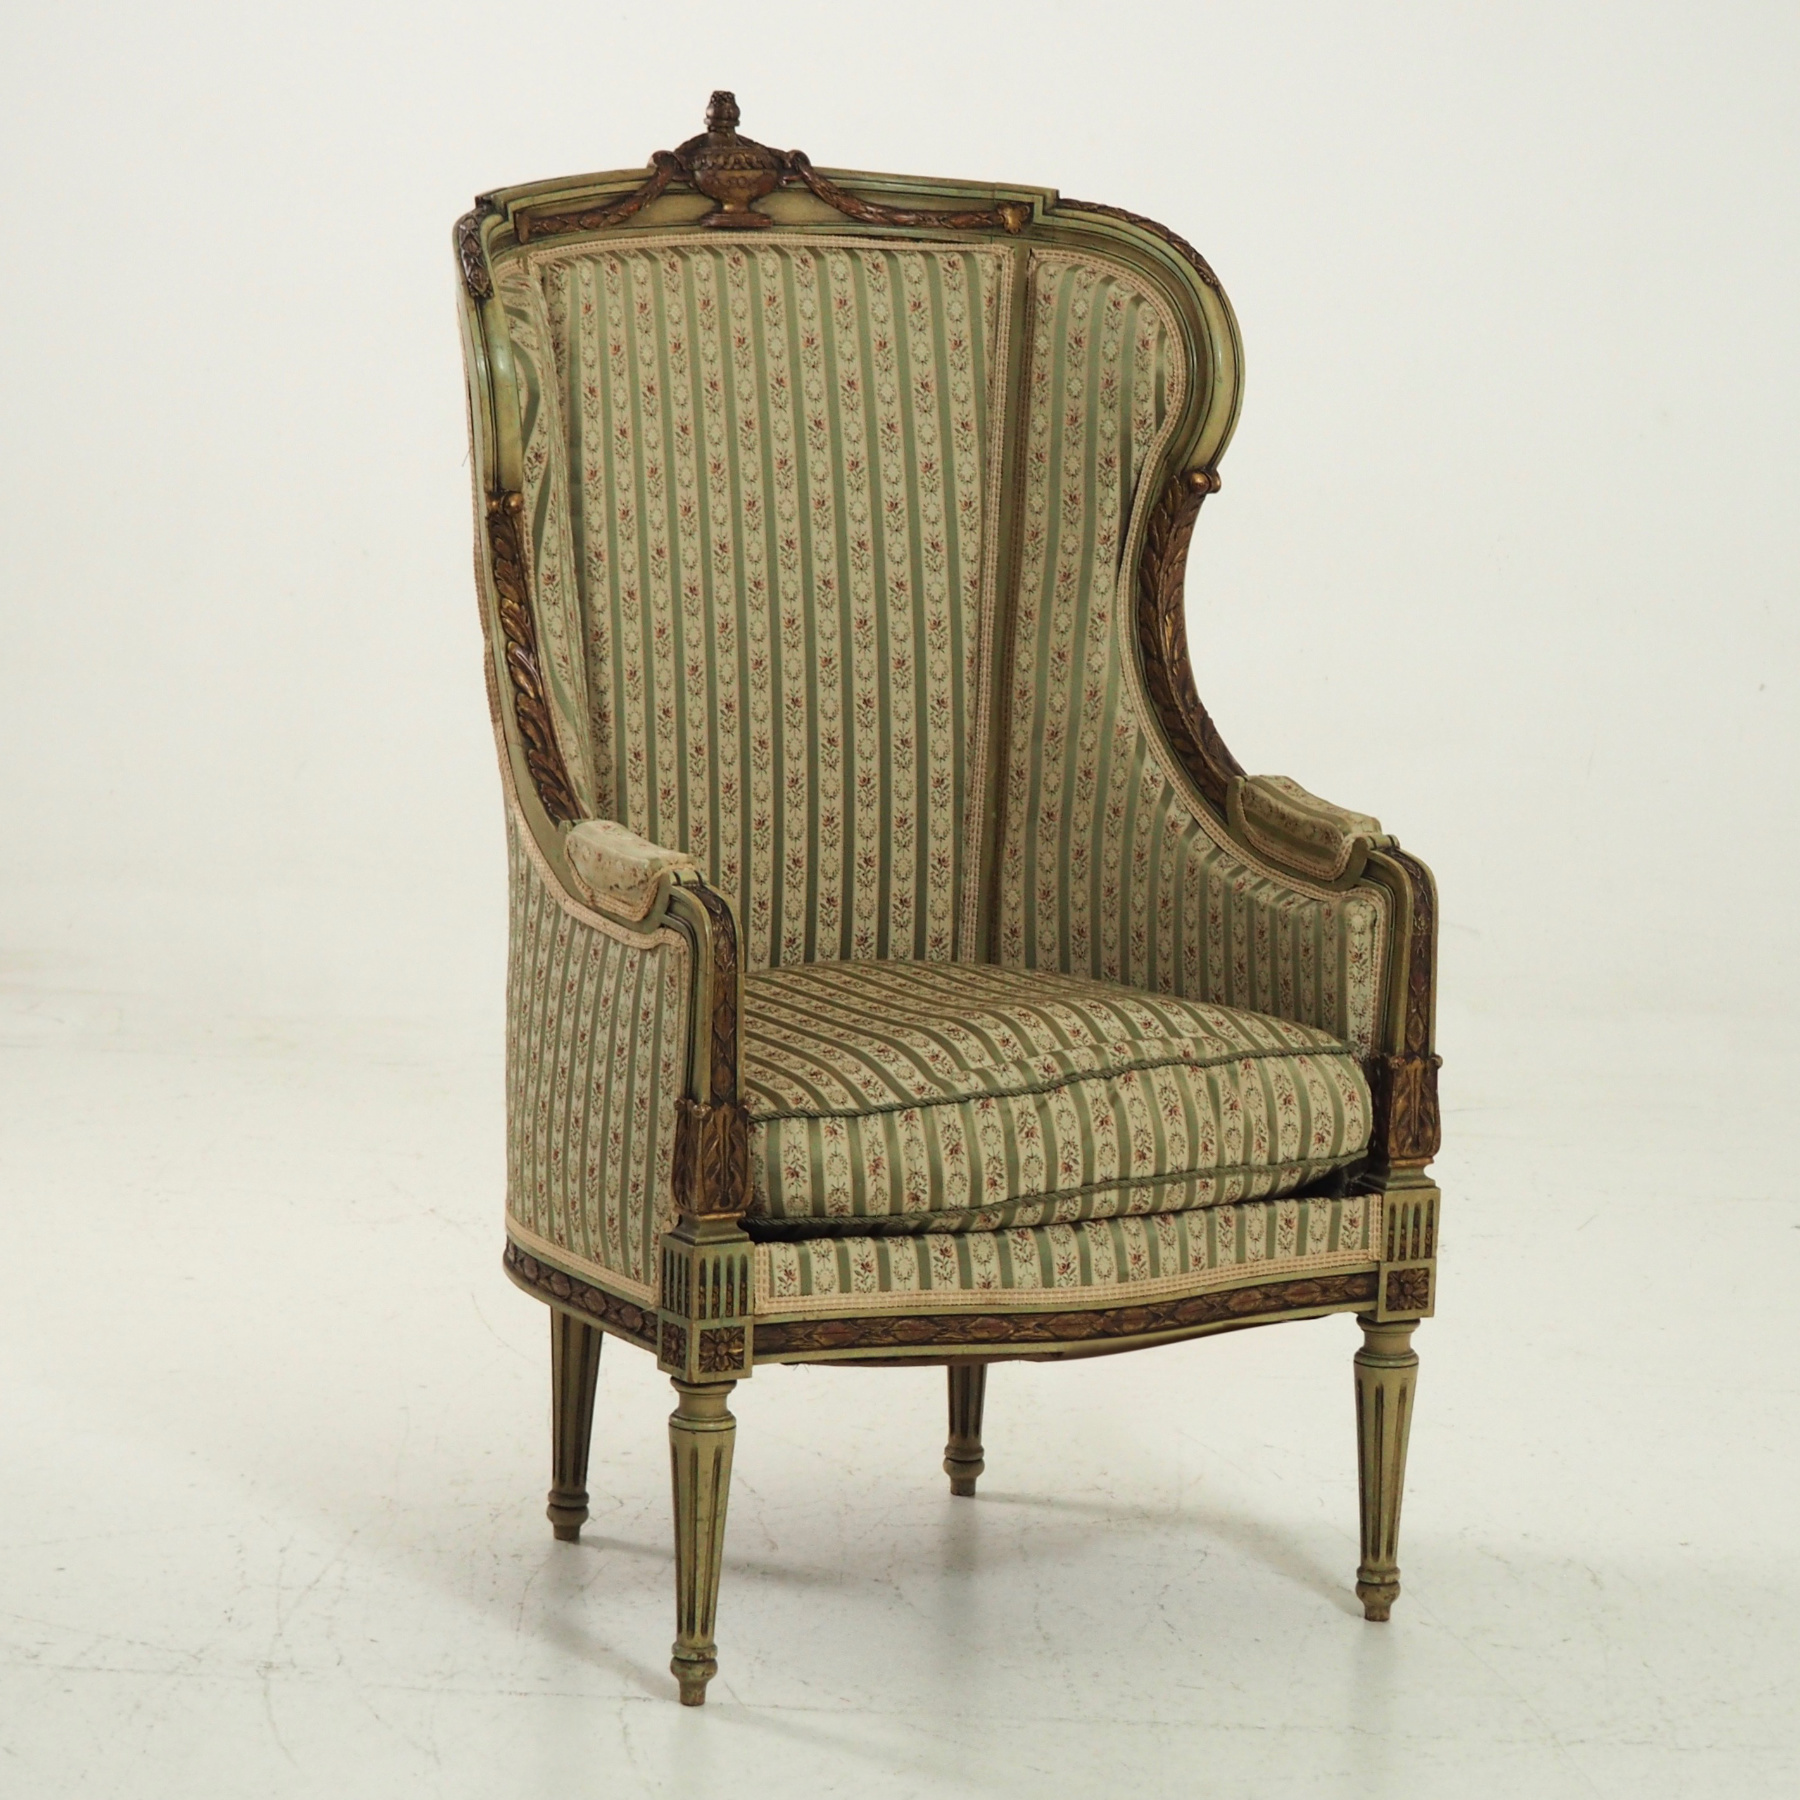 Fine bergère, in old paint, 19th C. - € 1.500